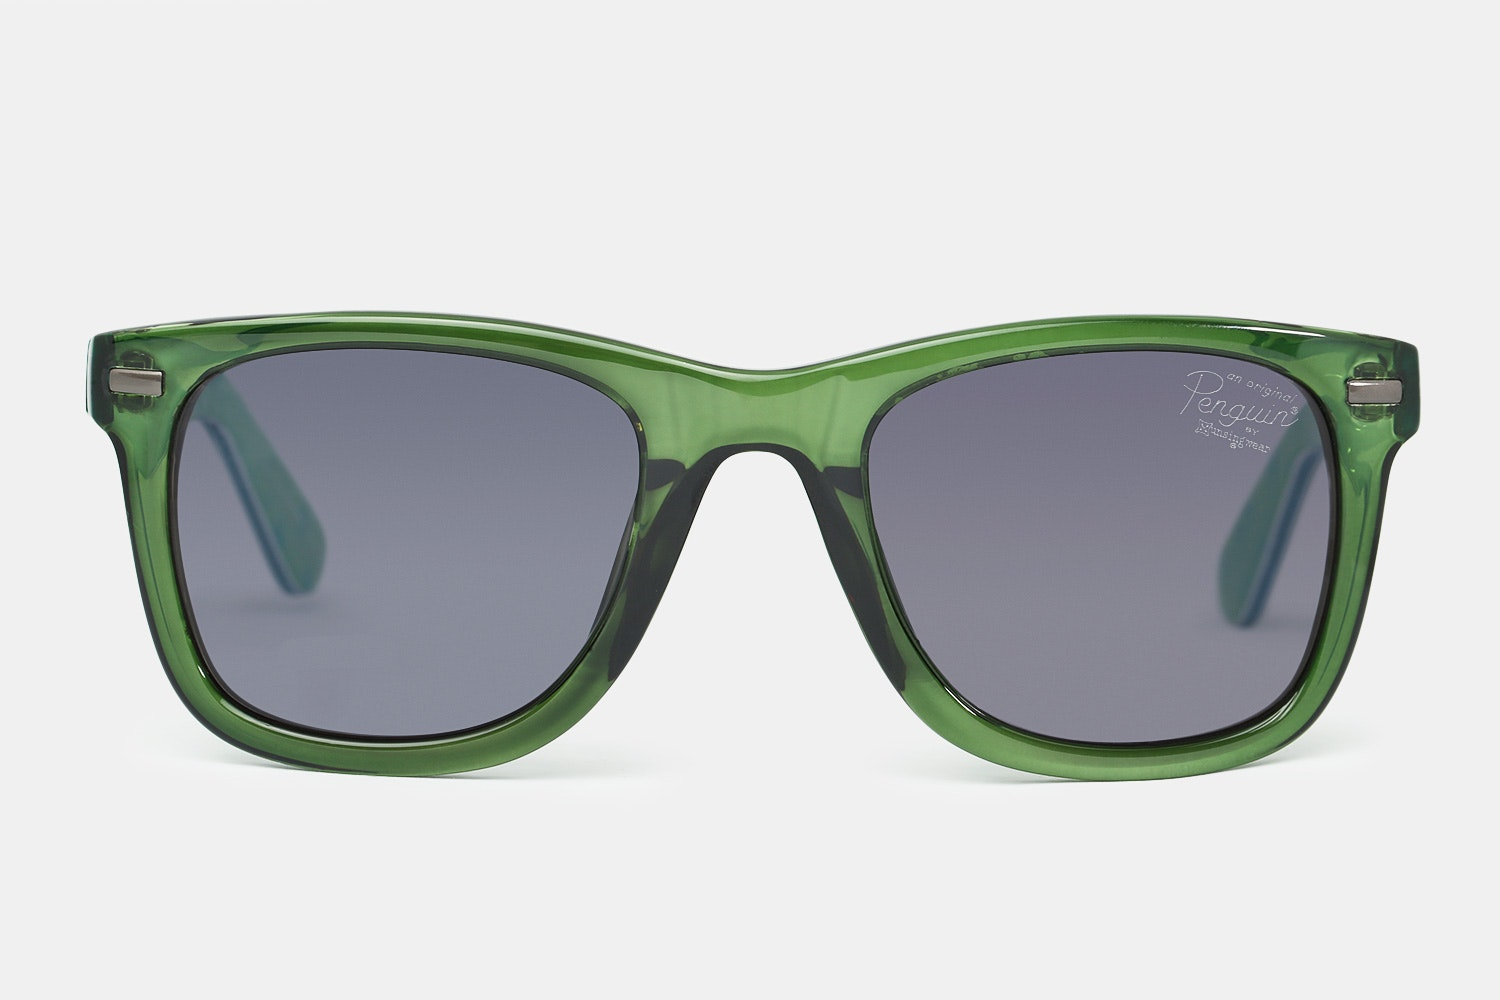 Green frames with gray-green lenses.